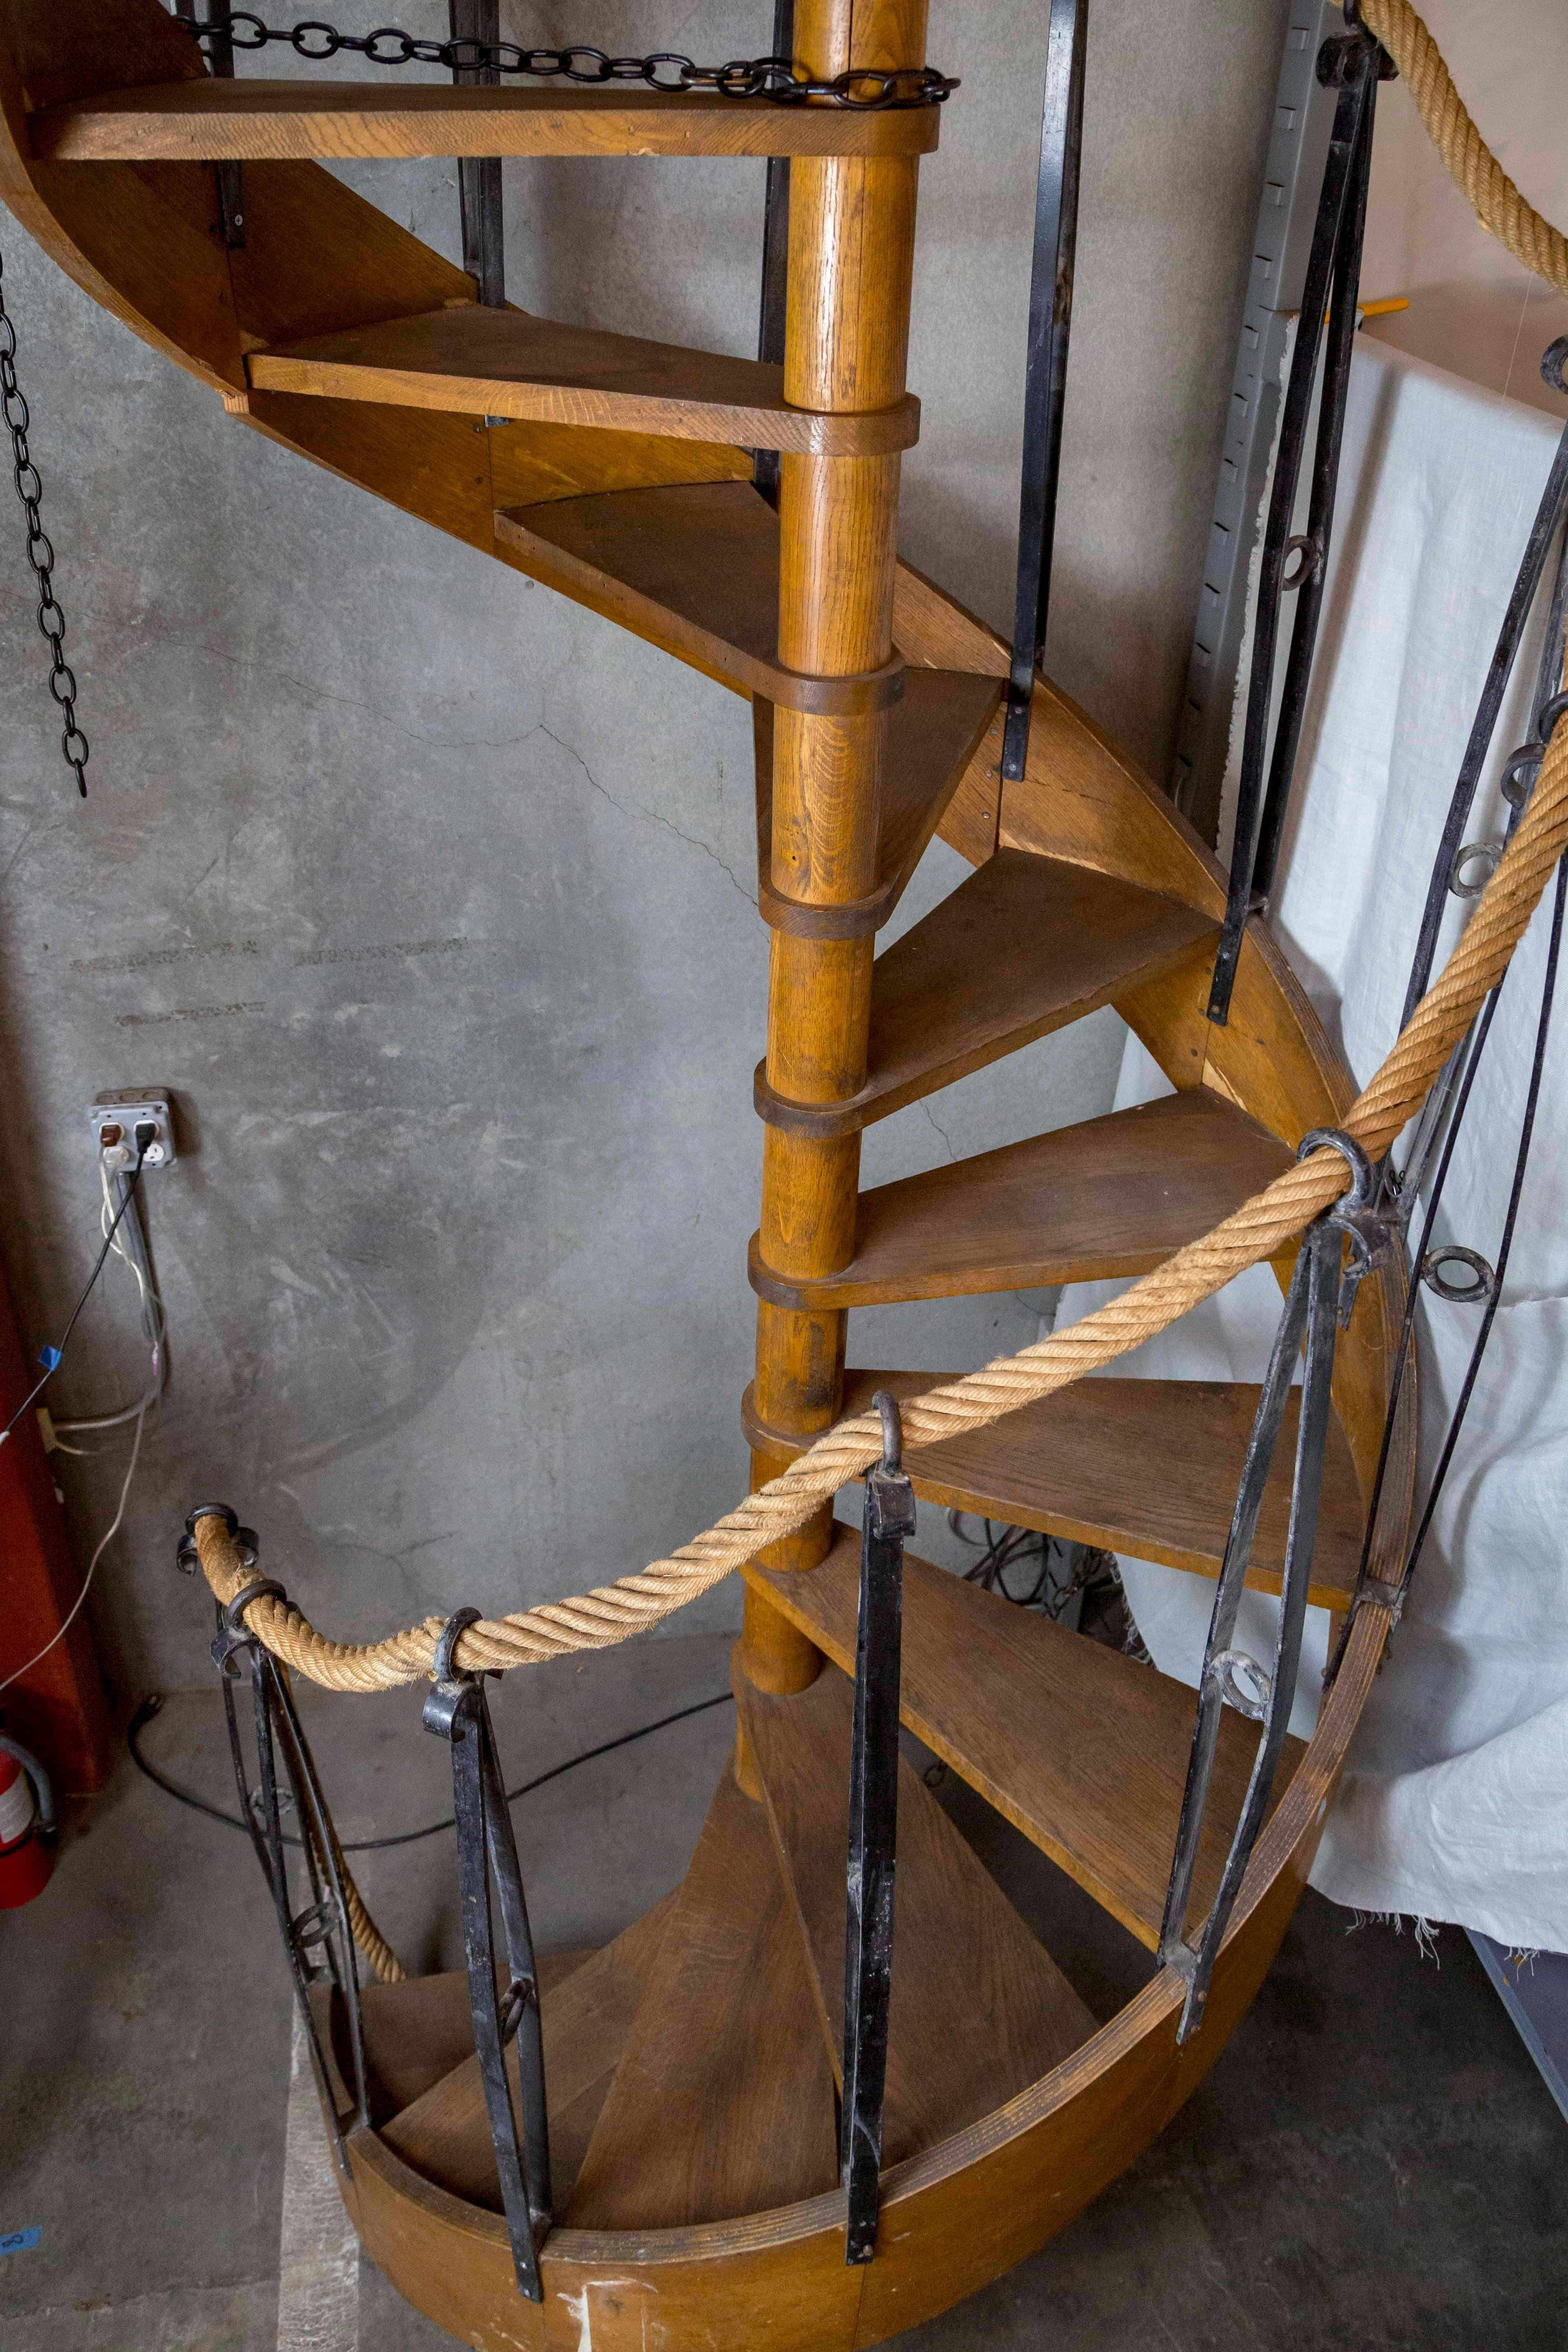 1930S Wood Spiral Staircase With Wrought Iron Balusters | Stair Banisters For Sale